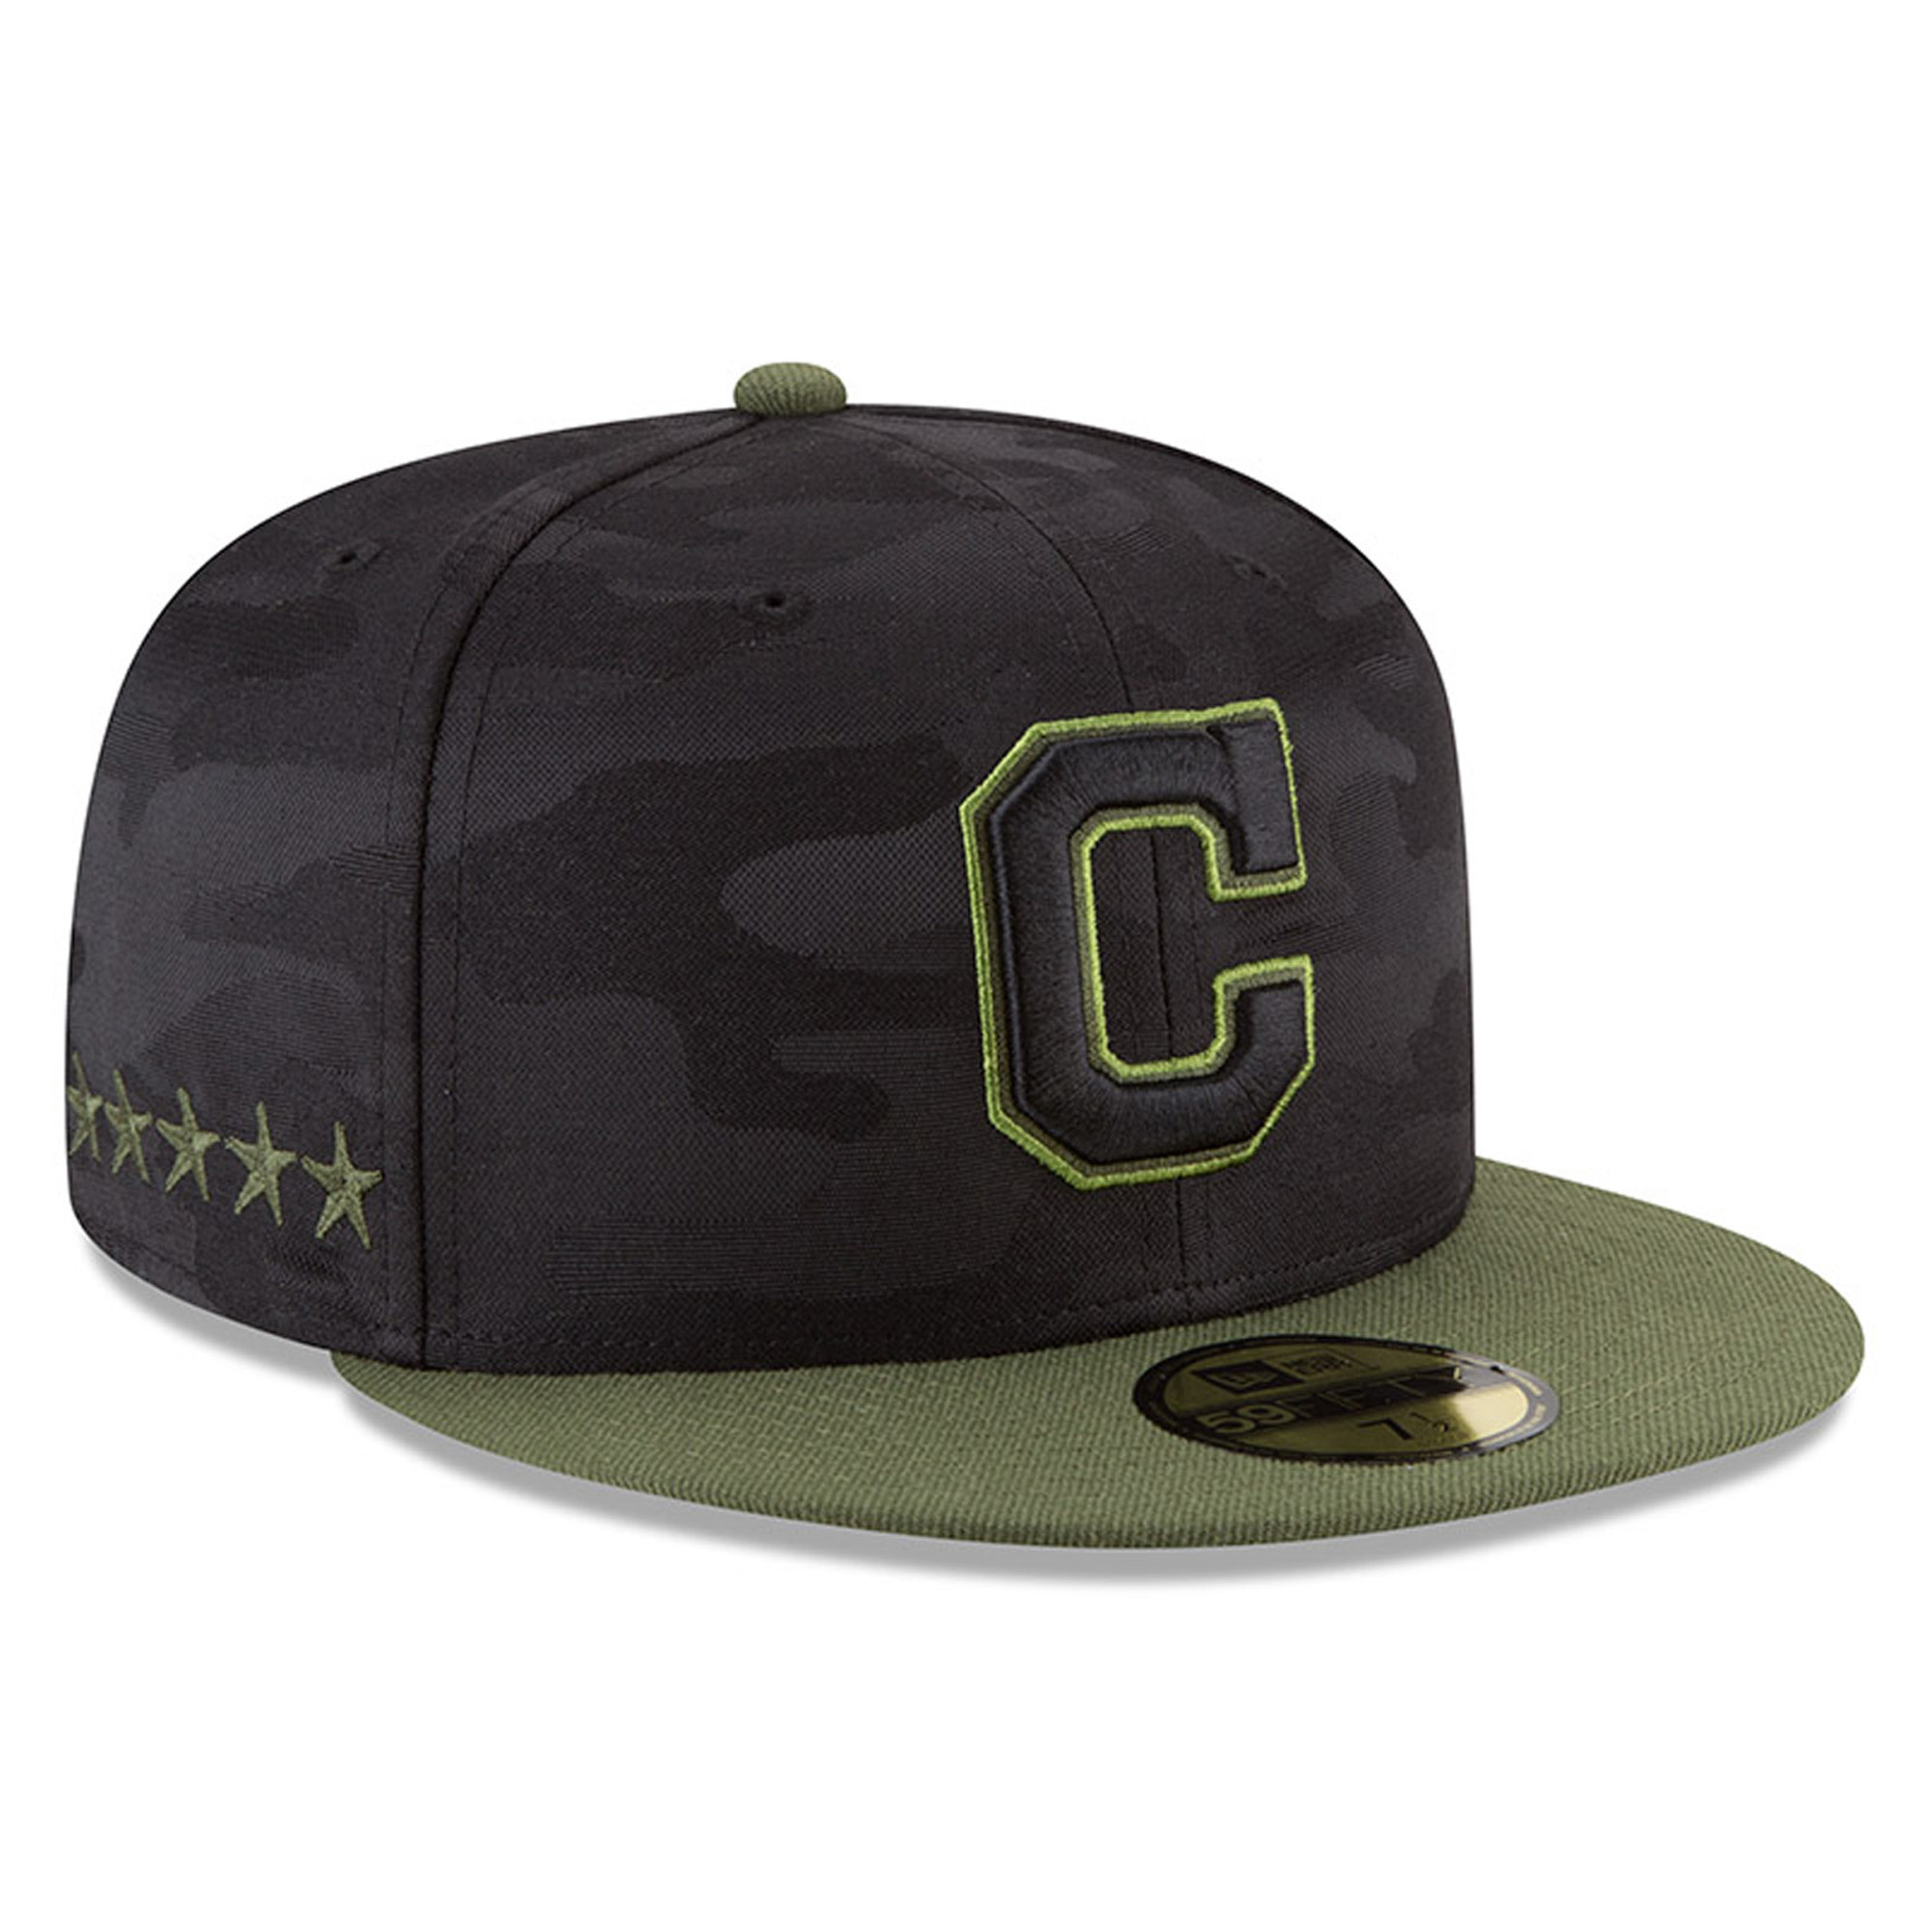 Cleveland Indians New Era 2018 Memorial Day On-Field 59FIFTY Fitted Hat - Black